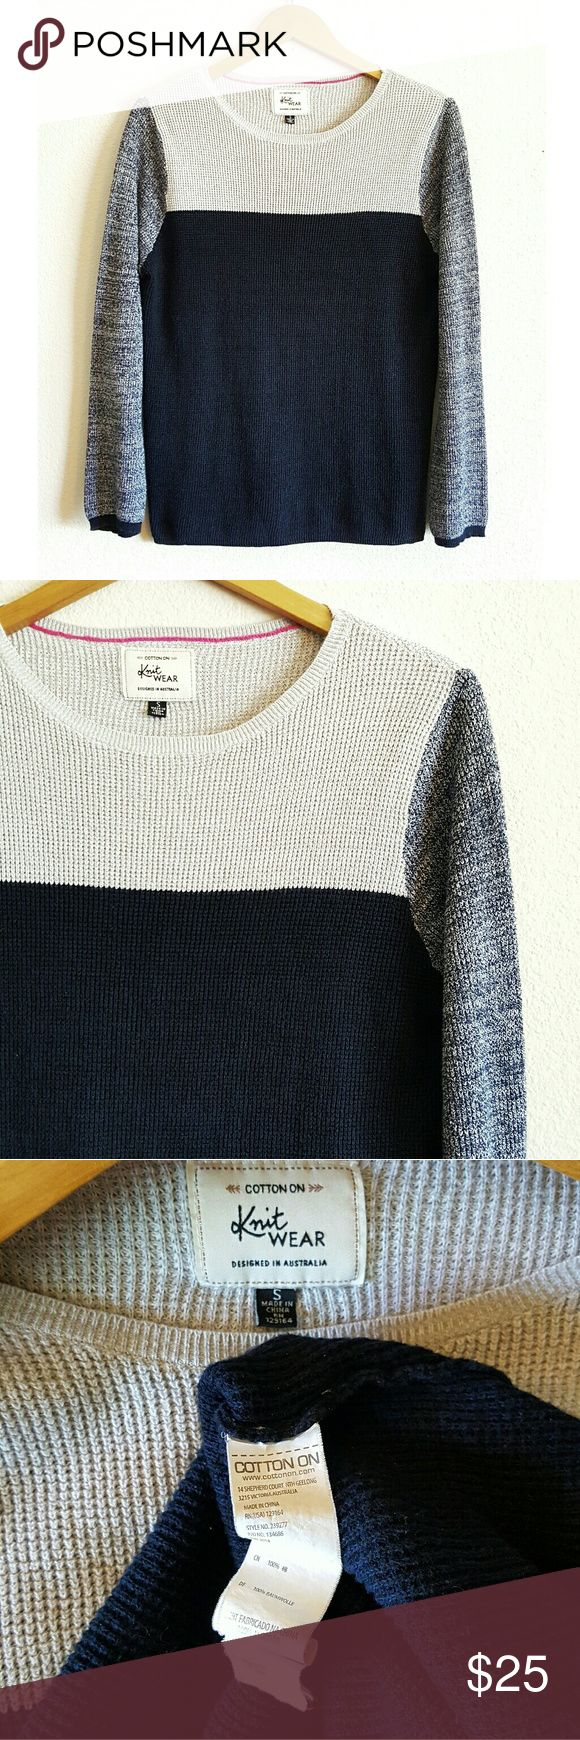 Cotton On knitwear contrast marled sweater Cotton On Knitwear contrast marled knit long sleeve sweater in navy, gray, and marled blue. - size small - 100% cotton Cotton On Sweaters